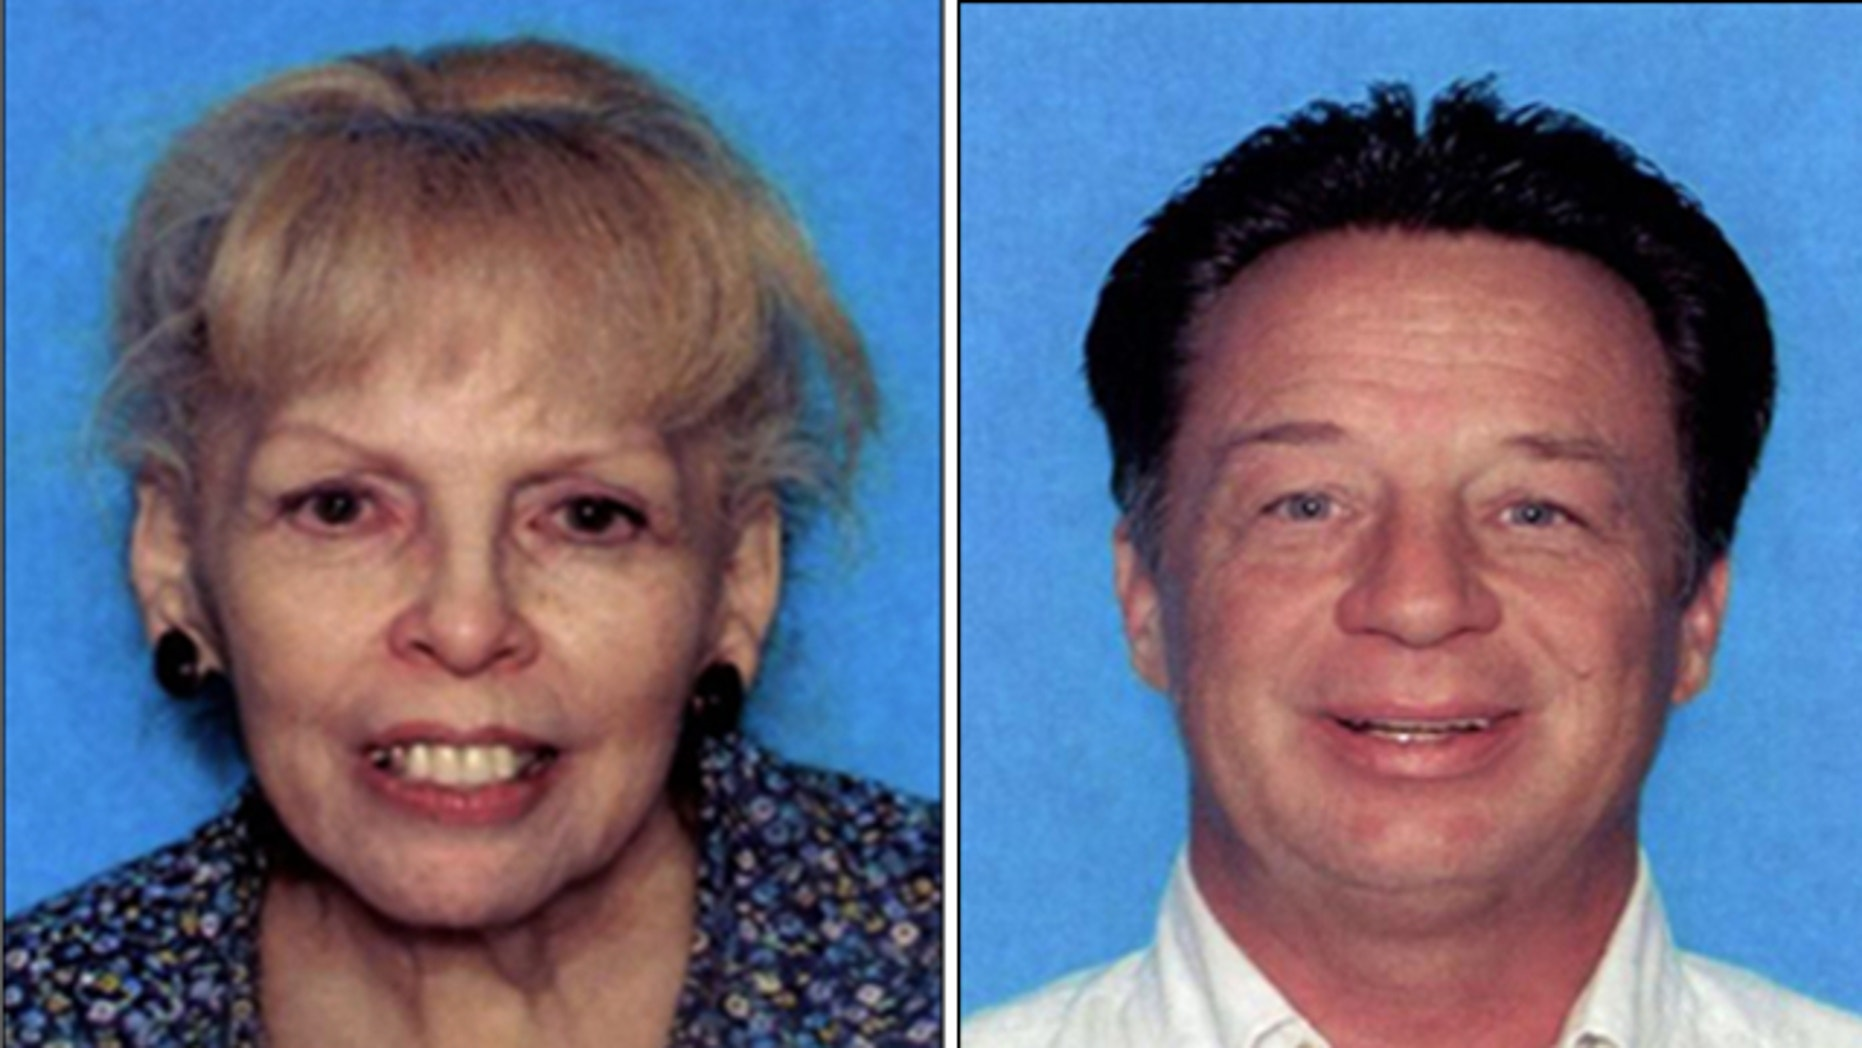 This undated photo provided by the El Paso County Sheriff's Office shows Lisbeth Ann Garrett and Roger Evan Garrett.